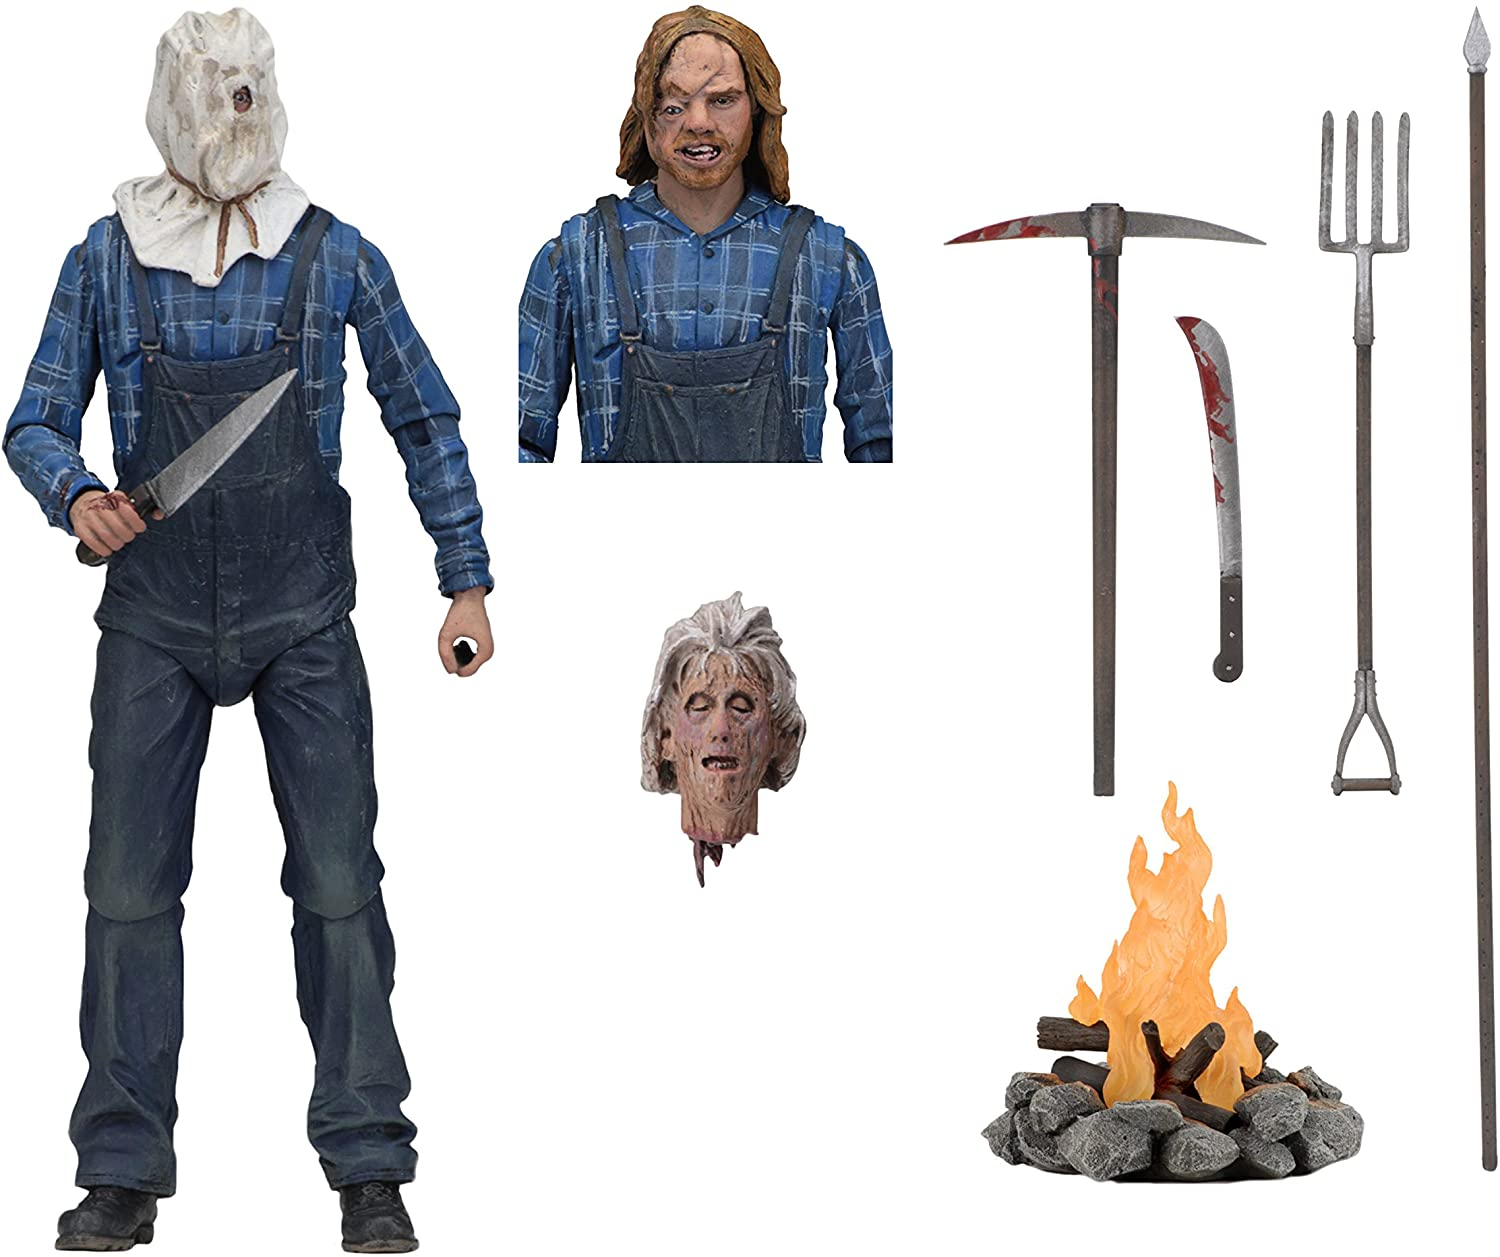 UK 7″ NECA Friday The 13th Part 2 Ultimate Jason Voorhees Action Figure Toy Gift